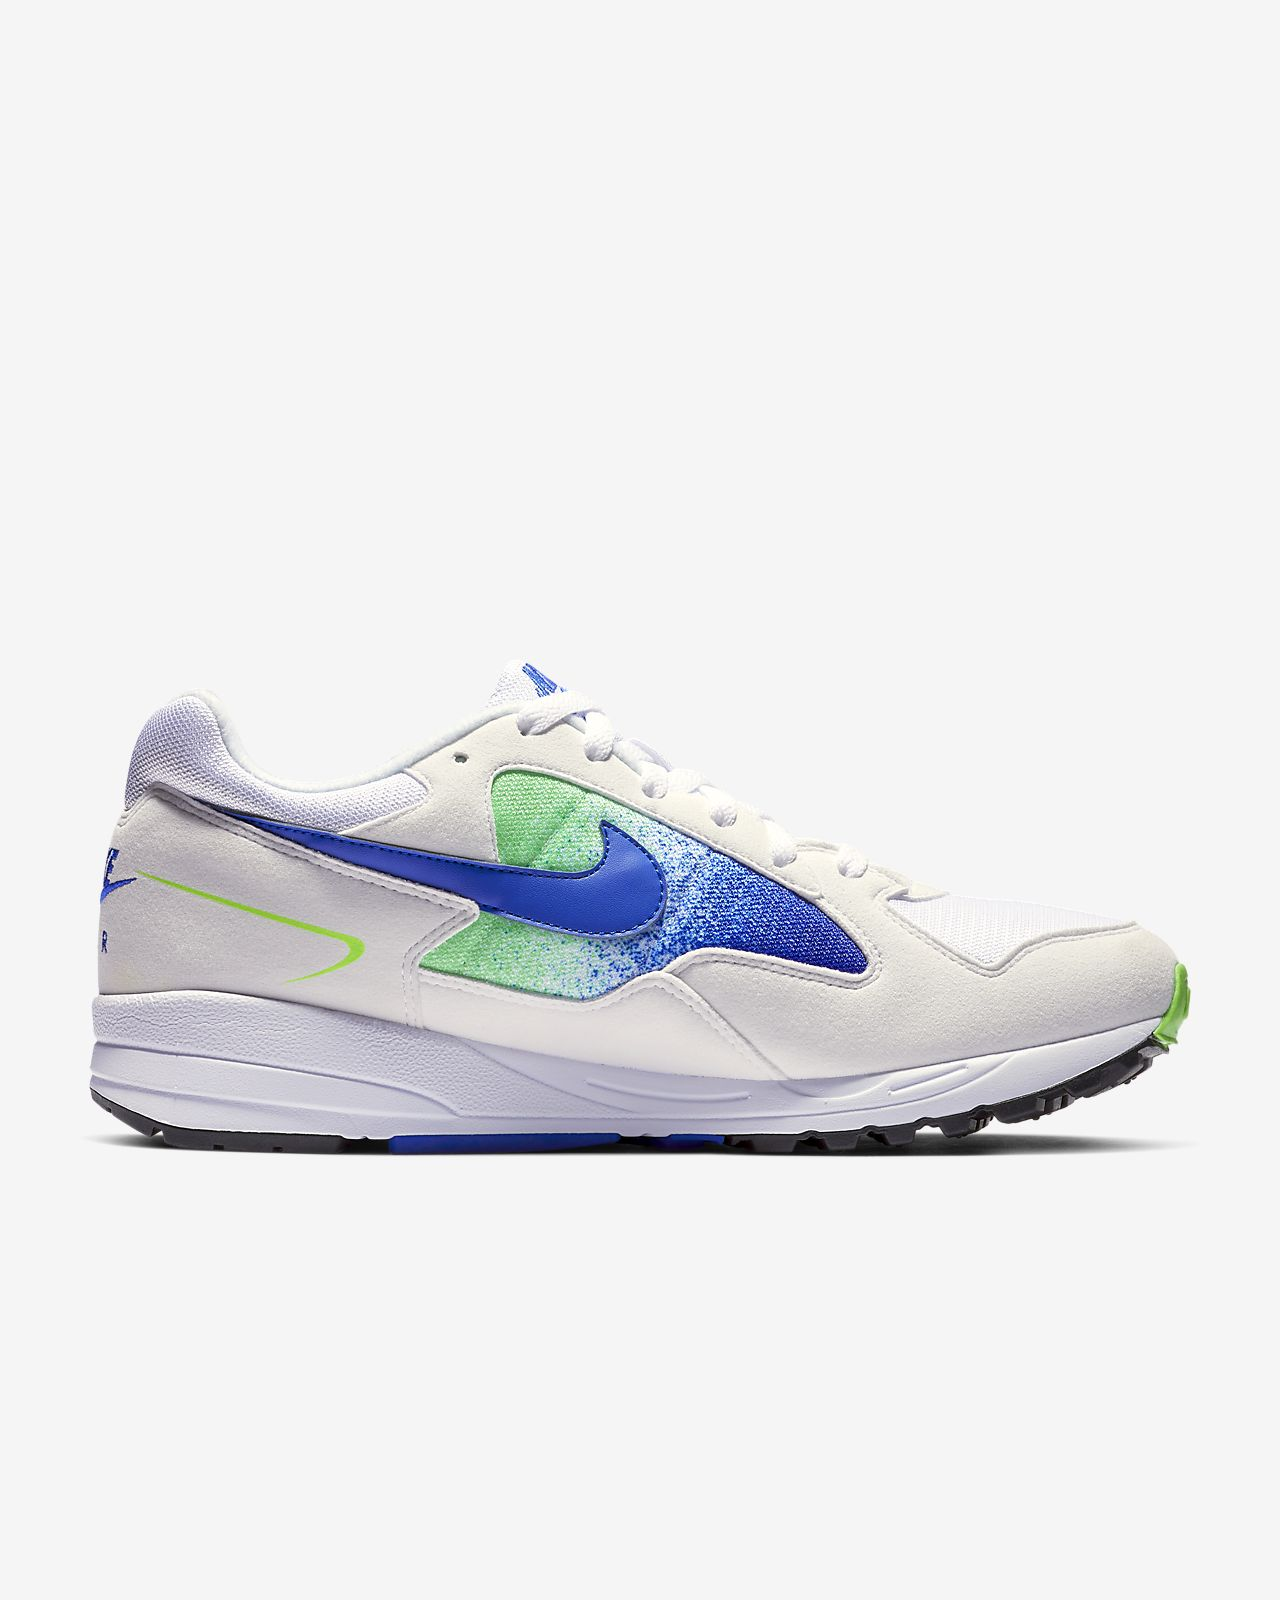 0dd1a9b55e7 Nike Air Skylon II Men s Shoe. Nike.com